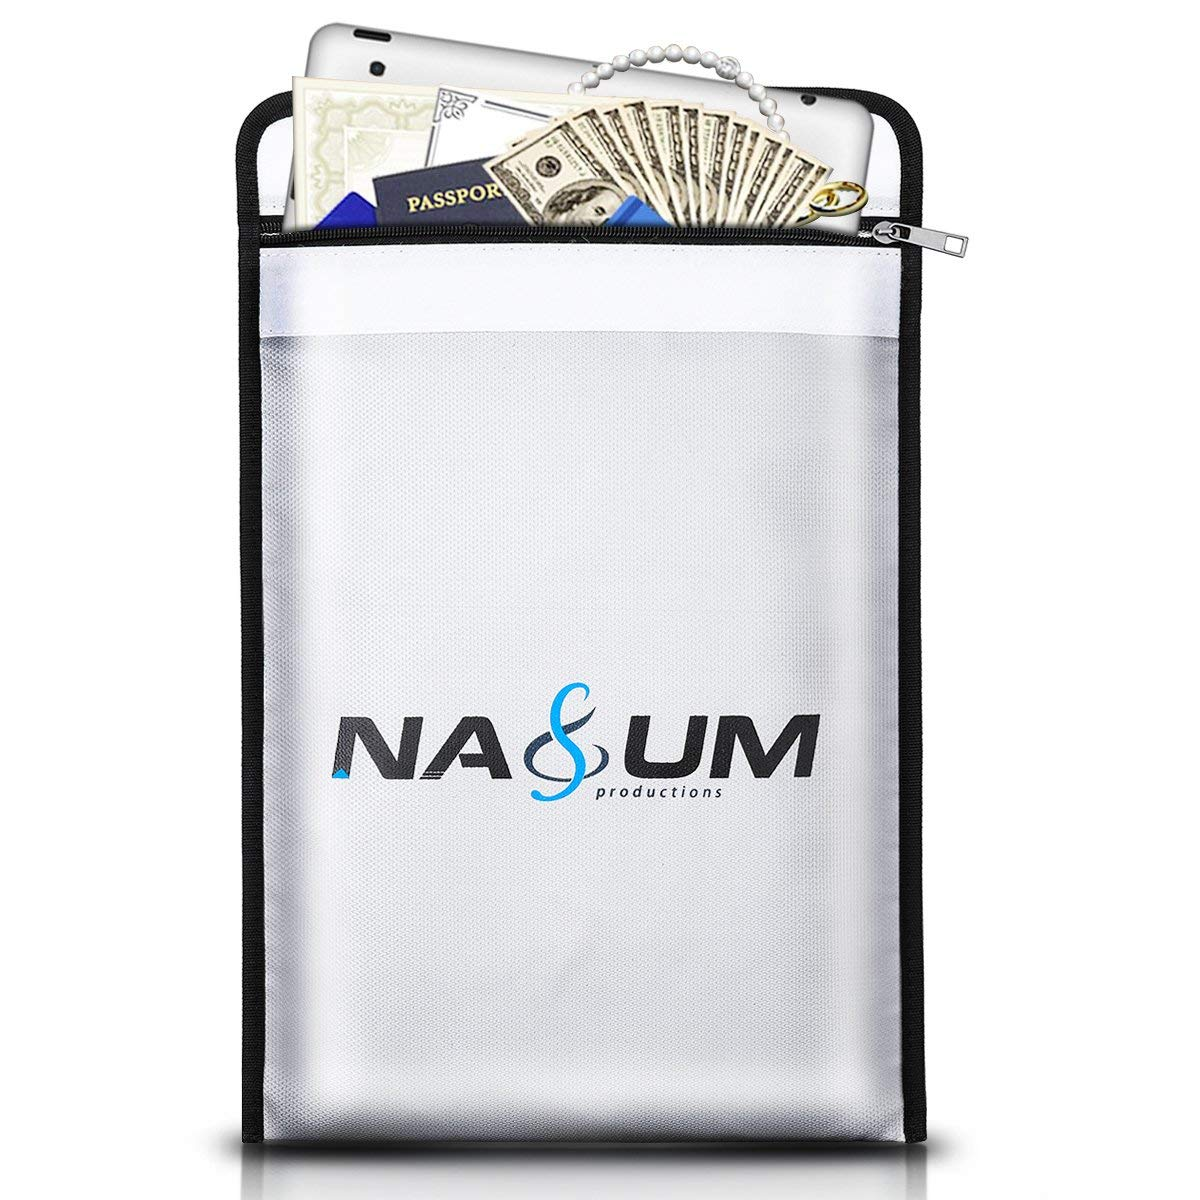 Safe Document Bag,NASUM 15''x11'' NON-ITCHY High-quality Liquid Silicone Coated Fireproof Money Bag.Water-resistant Safe Storage for Documents,Money,Cash,Passport,Certificate and Valuables. silver